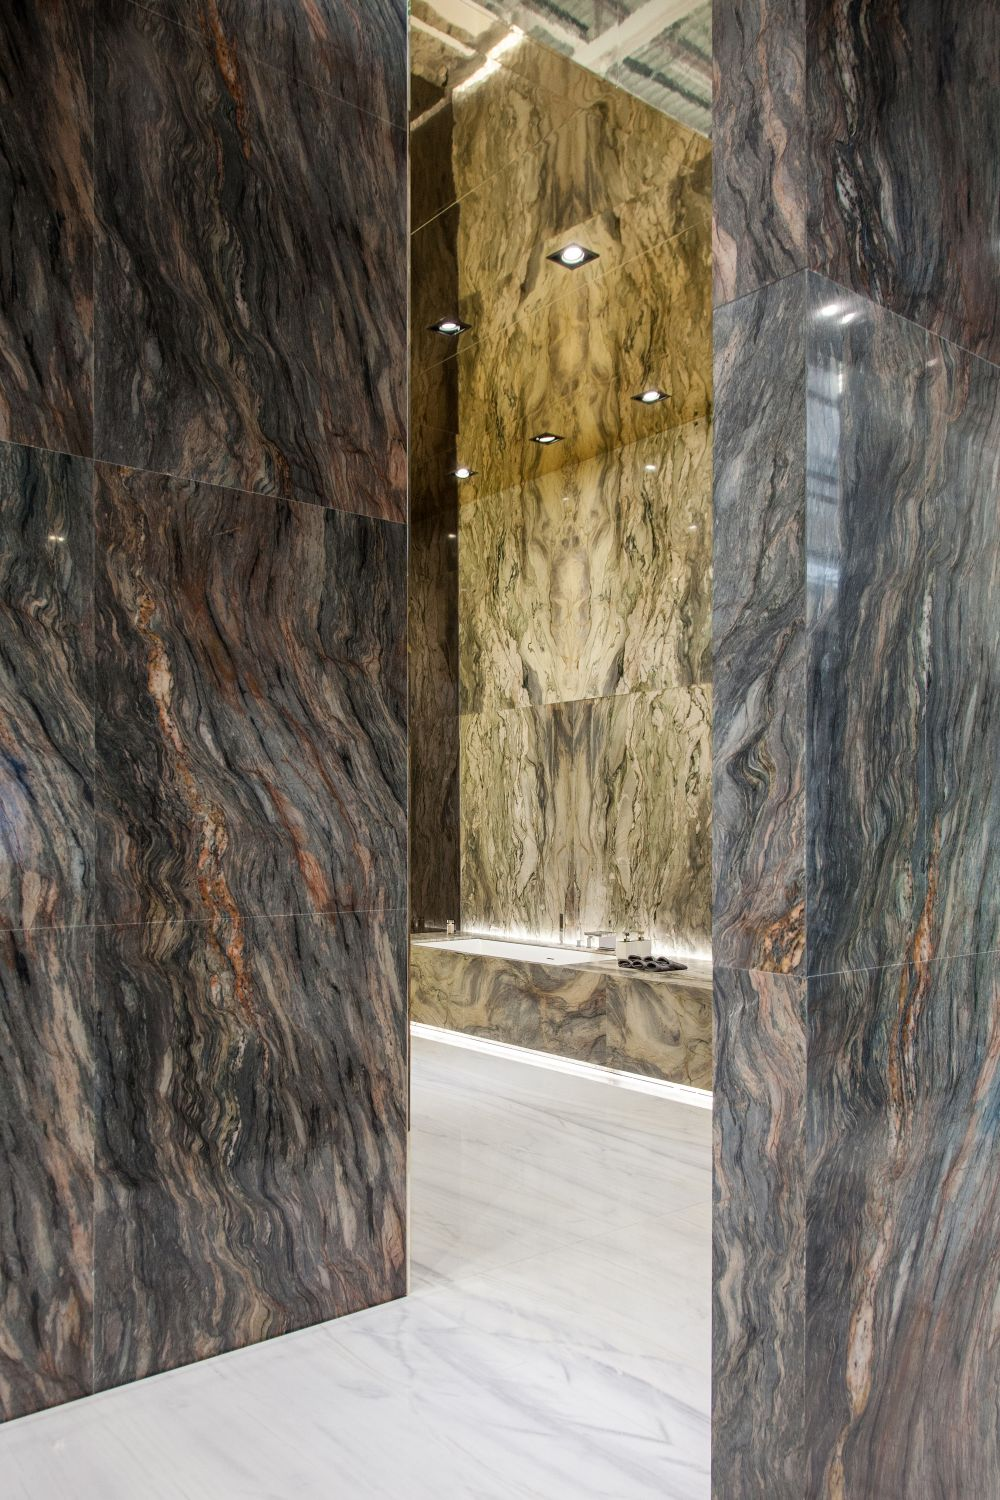 Knowing how to bring out the natural beauty in a material is an art form which this company masters